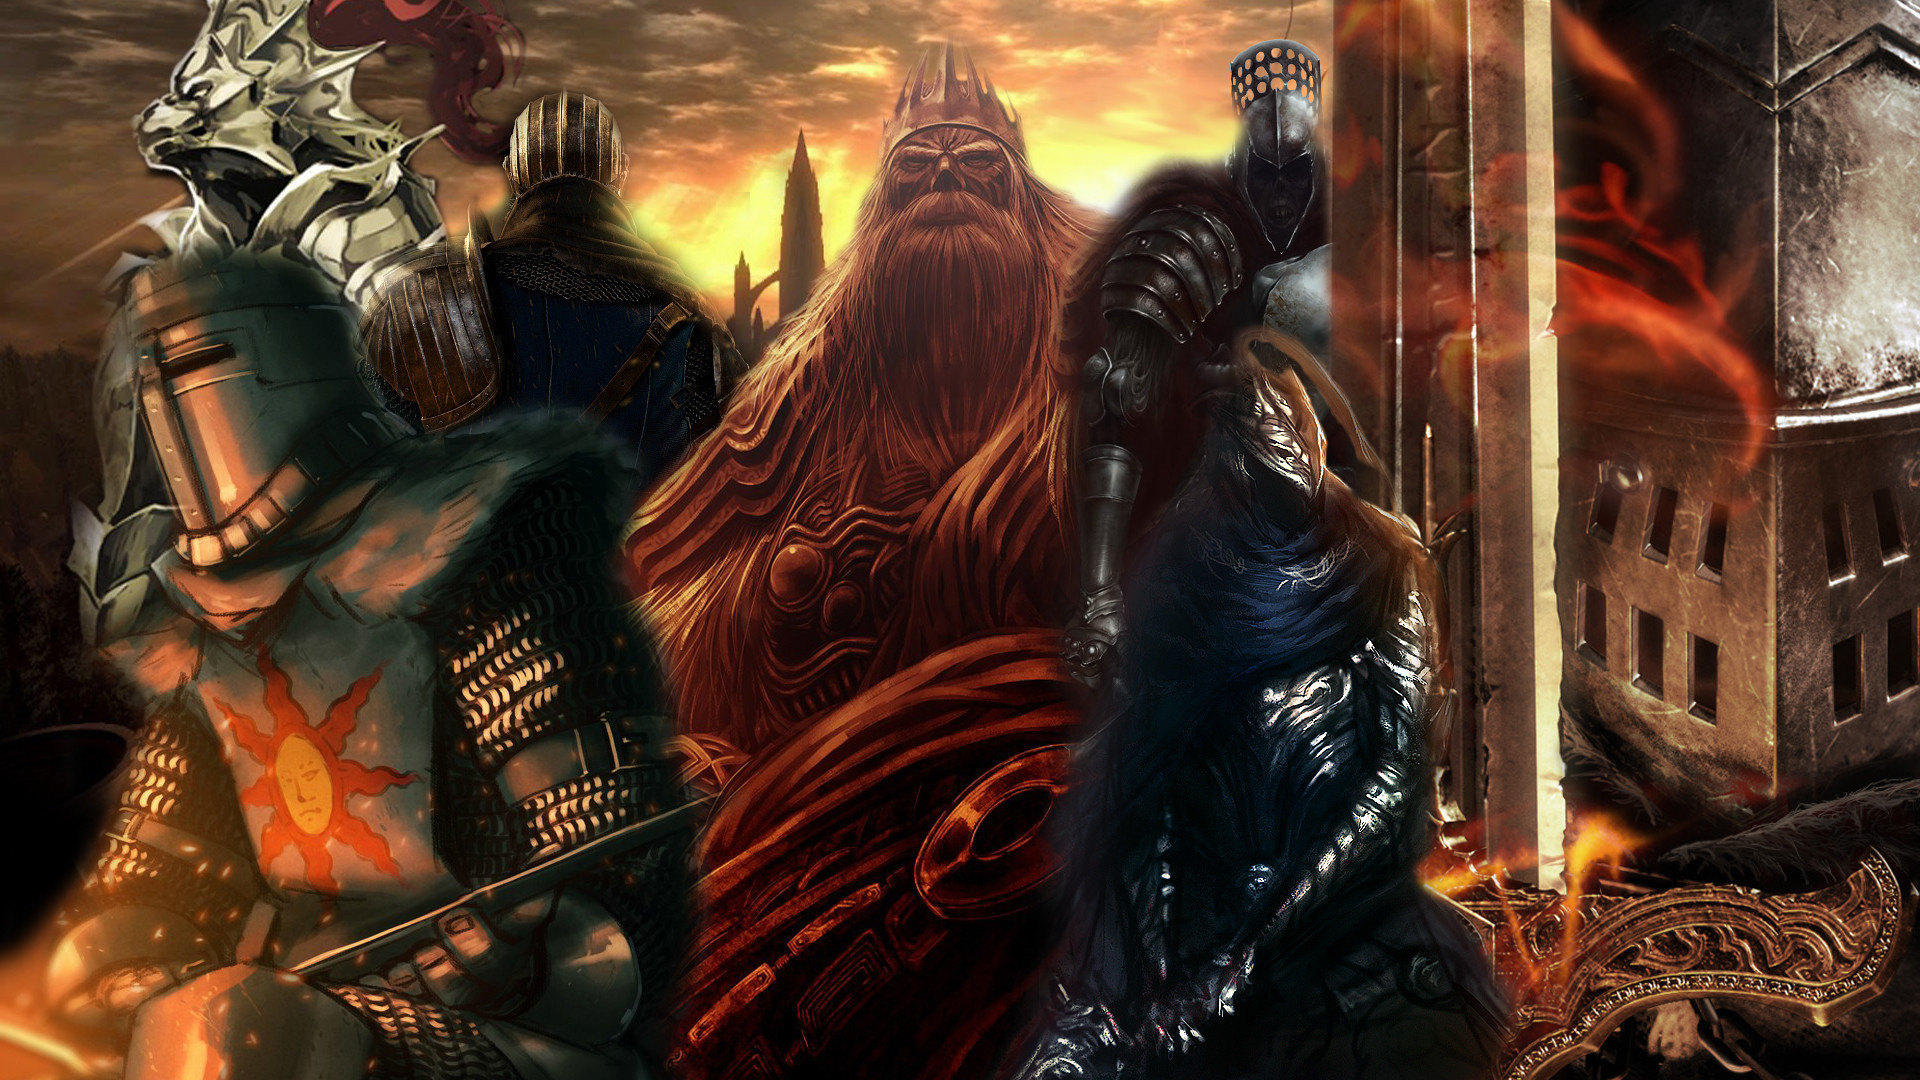 Created a Dark Souls Wallpaper out of my favorite fan arts / pictures [ 1920×1080] …